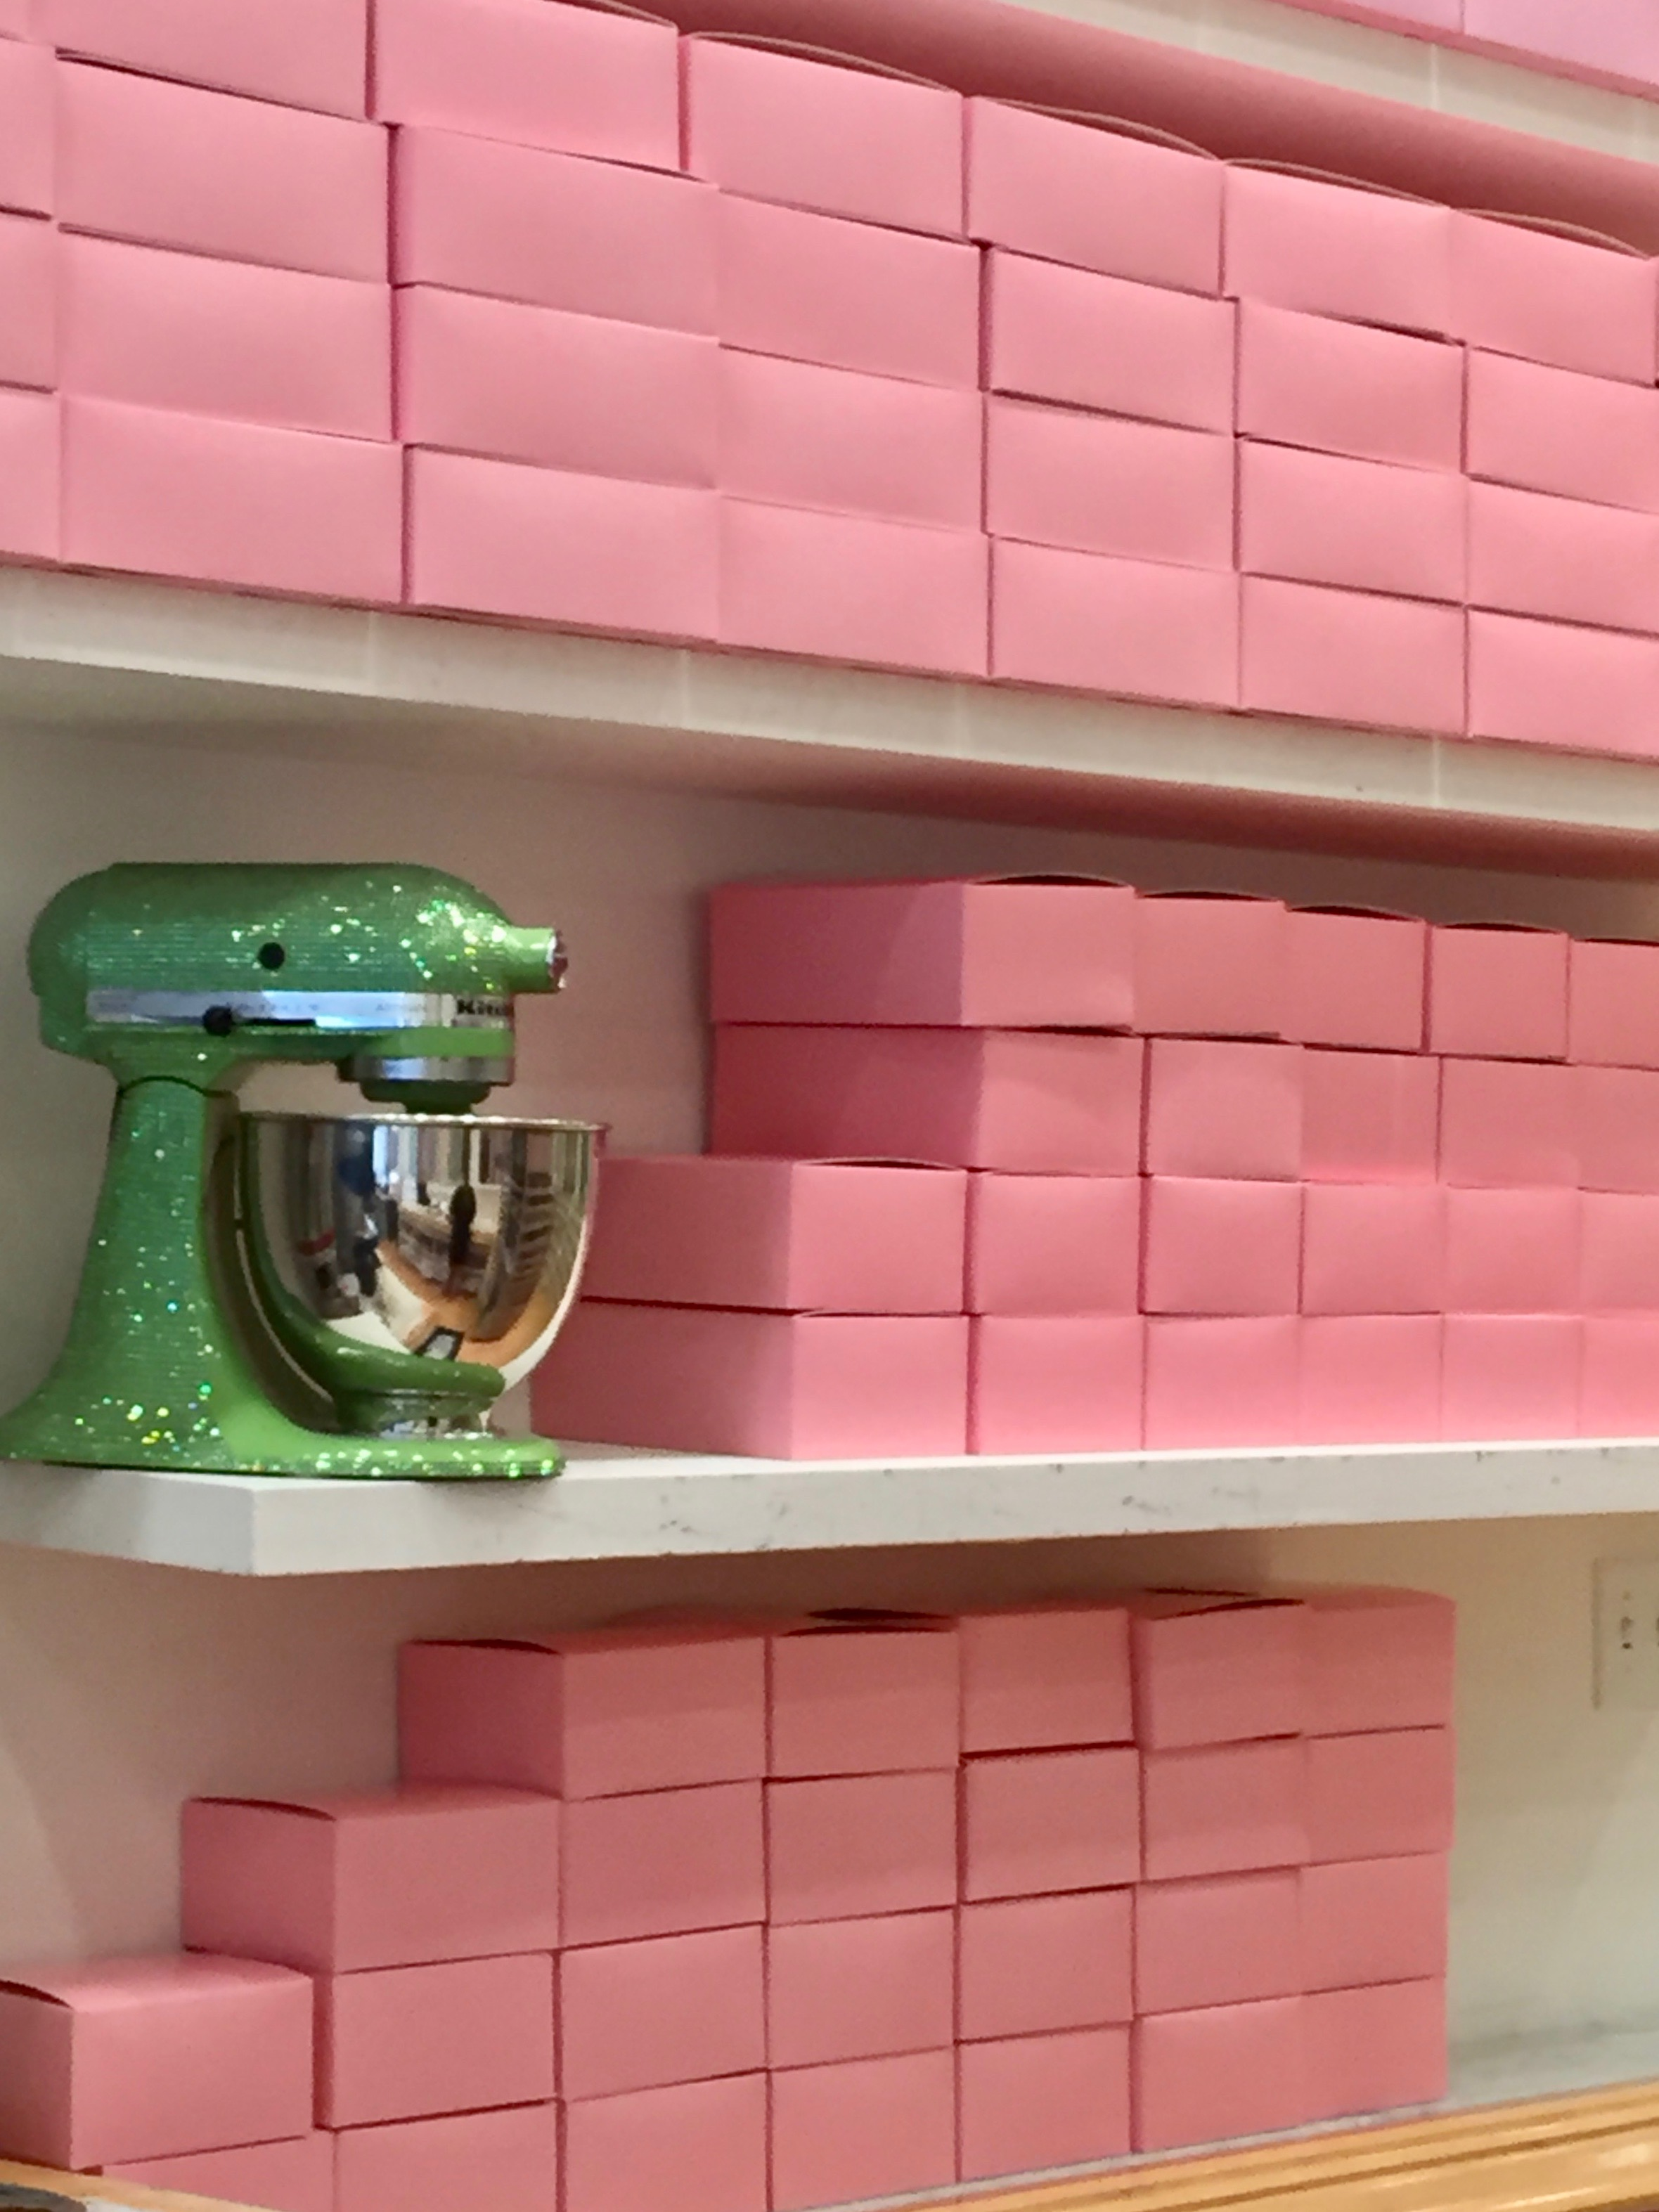 Georgetown Cupcake pink boxes green sparkle mixer.jpg